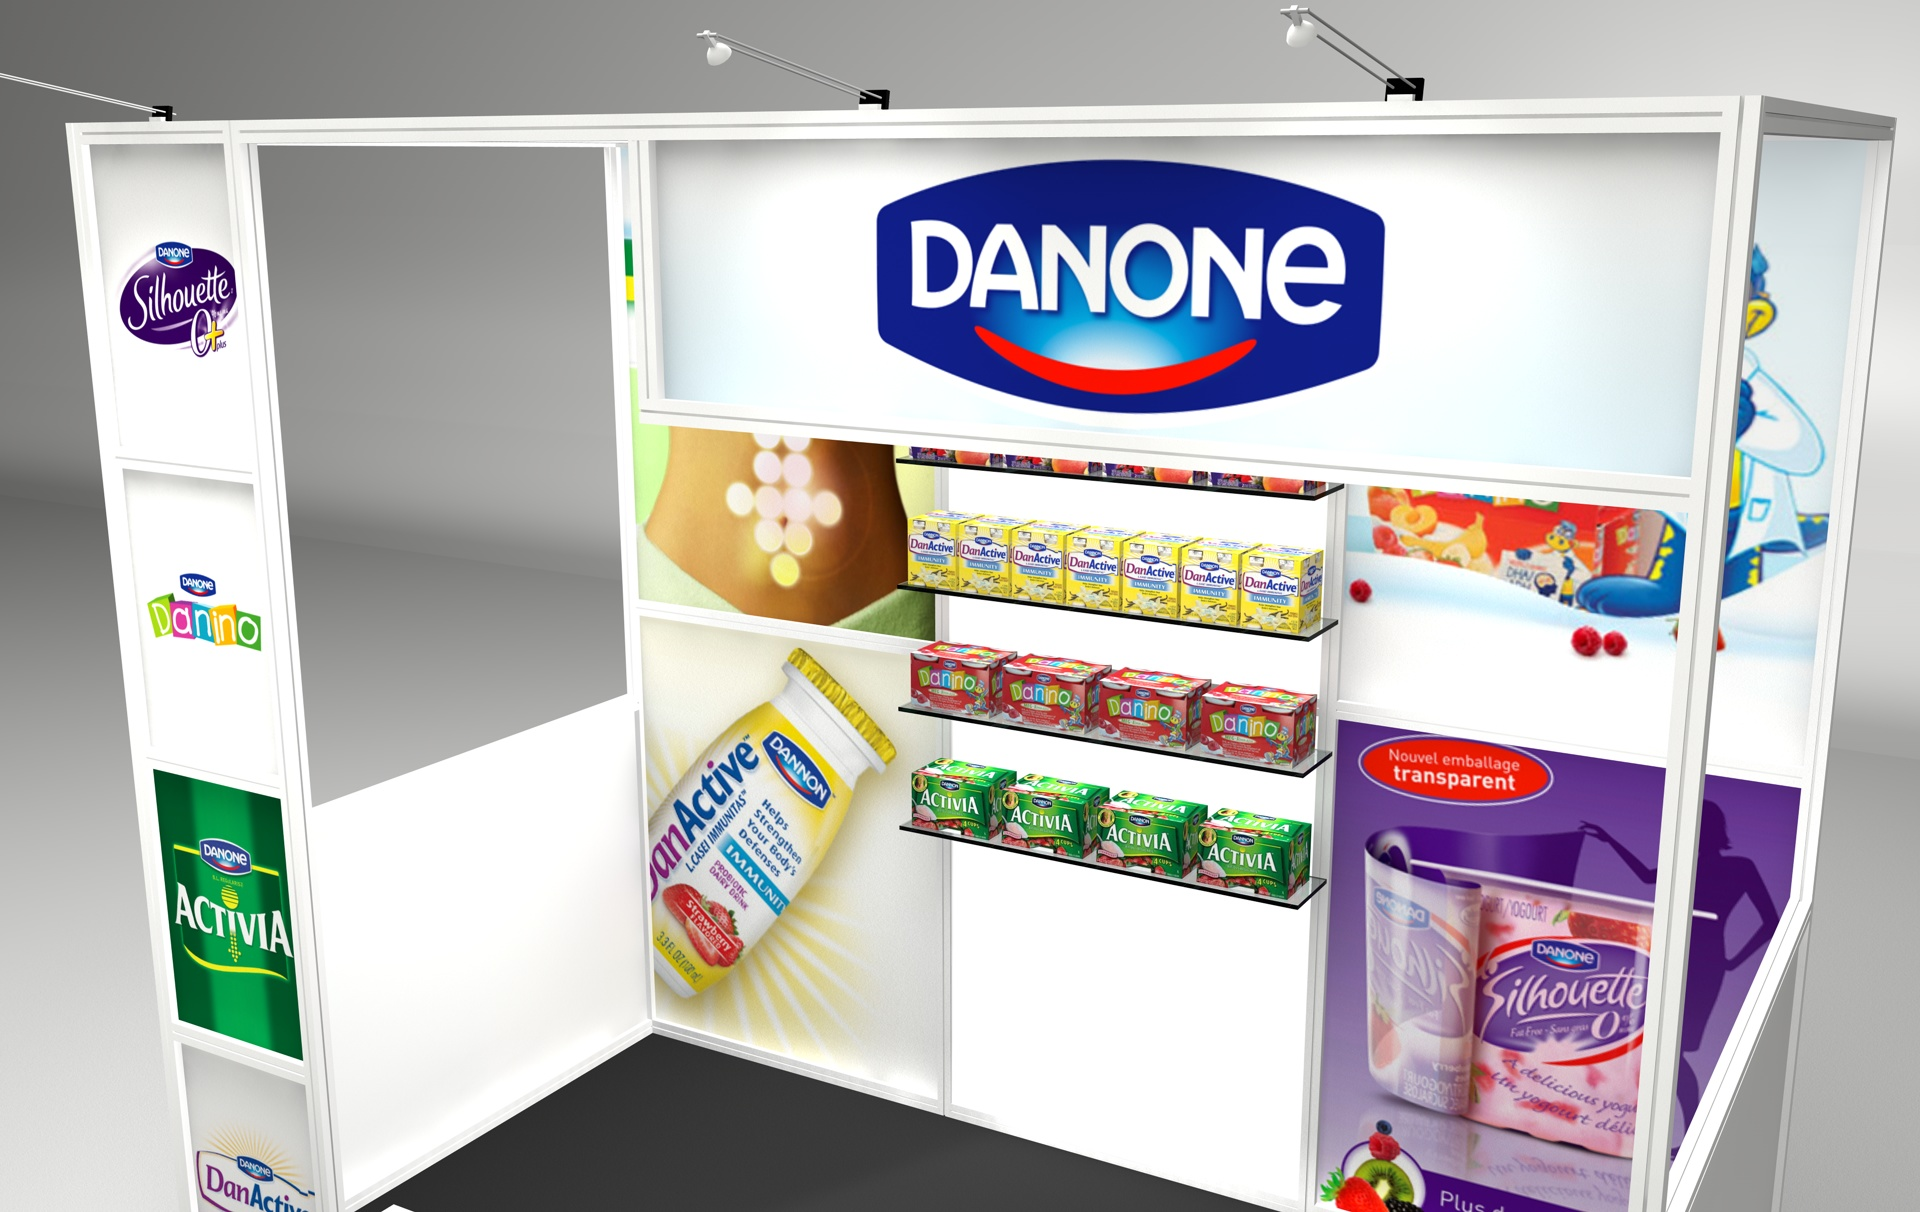 View 3 of Danone's 10' x 10' trade show booth rental with printed graphics